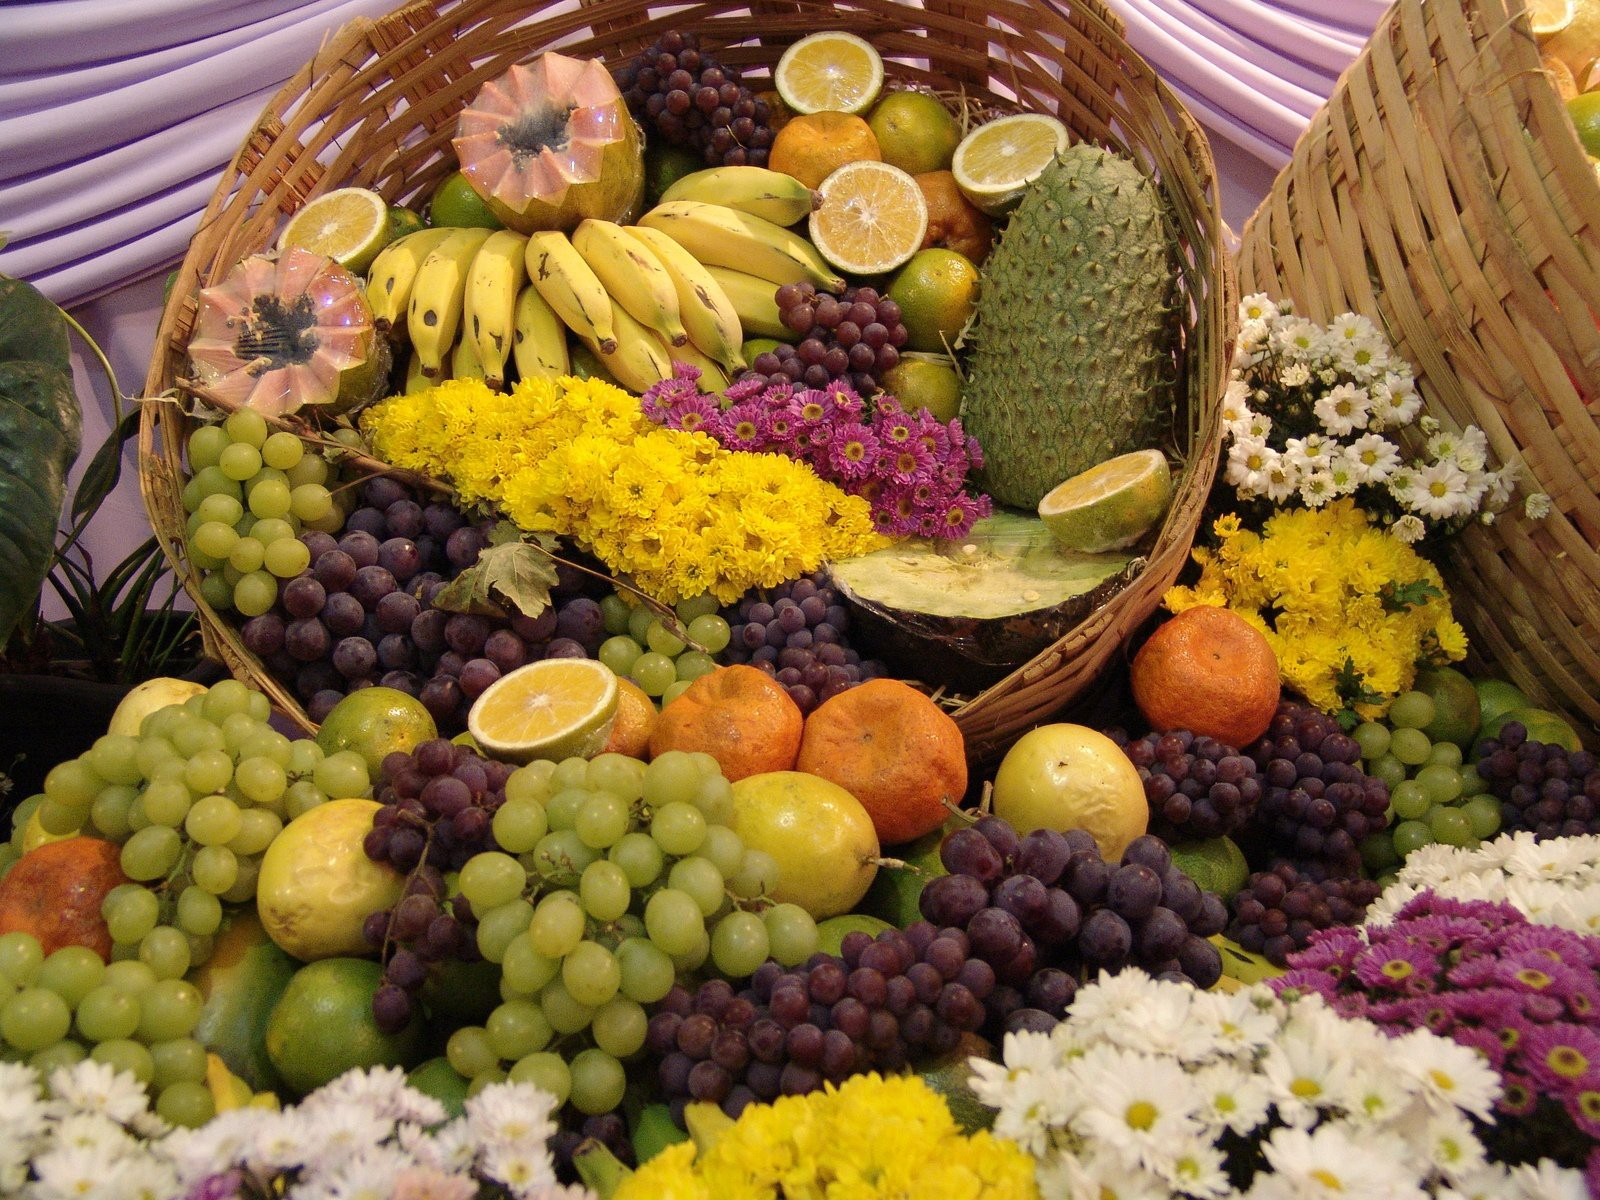 A table and basket full of fruit